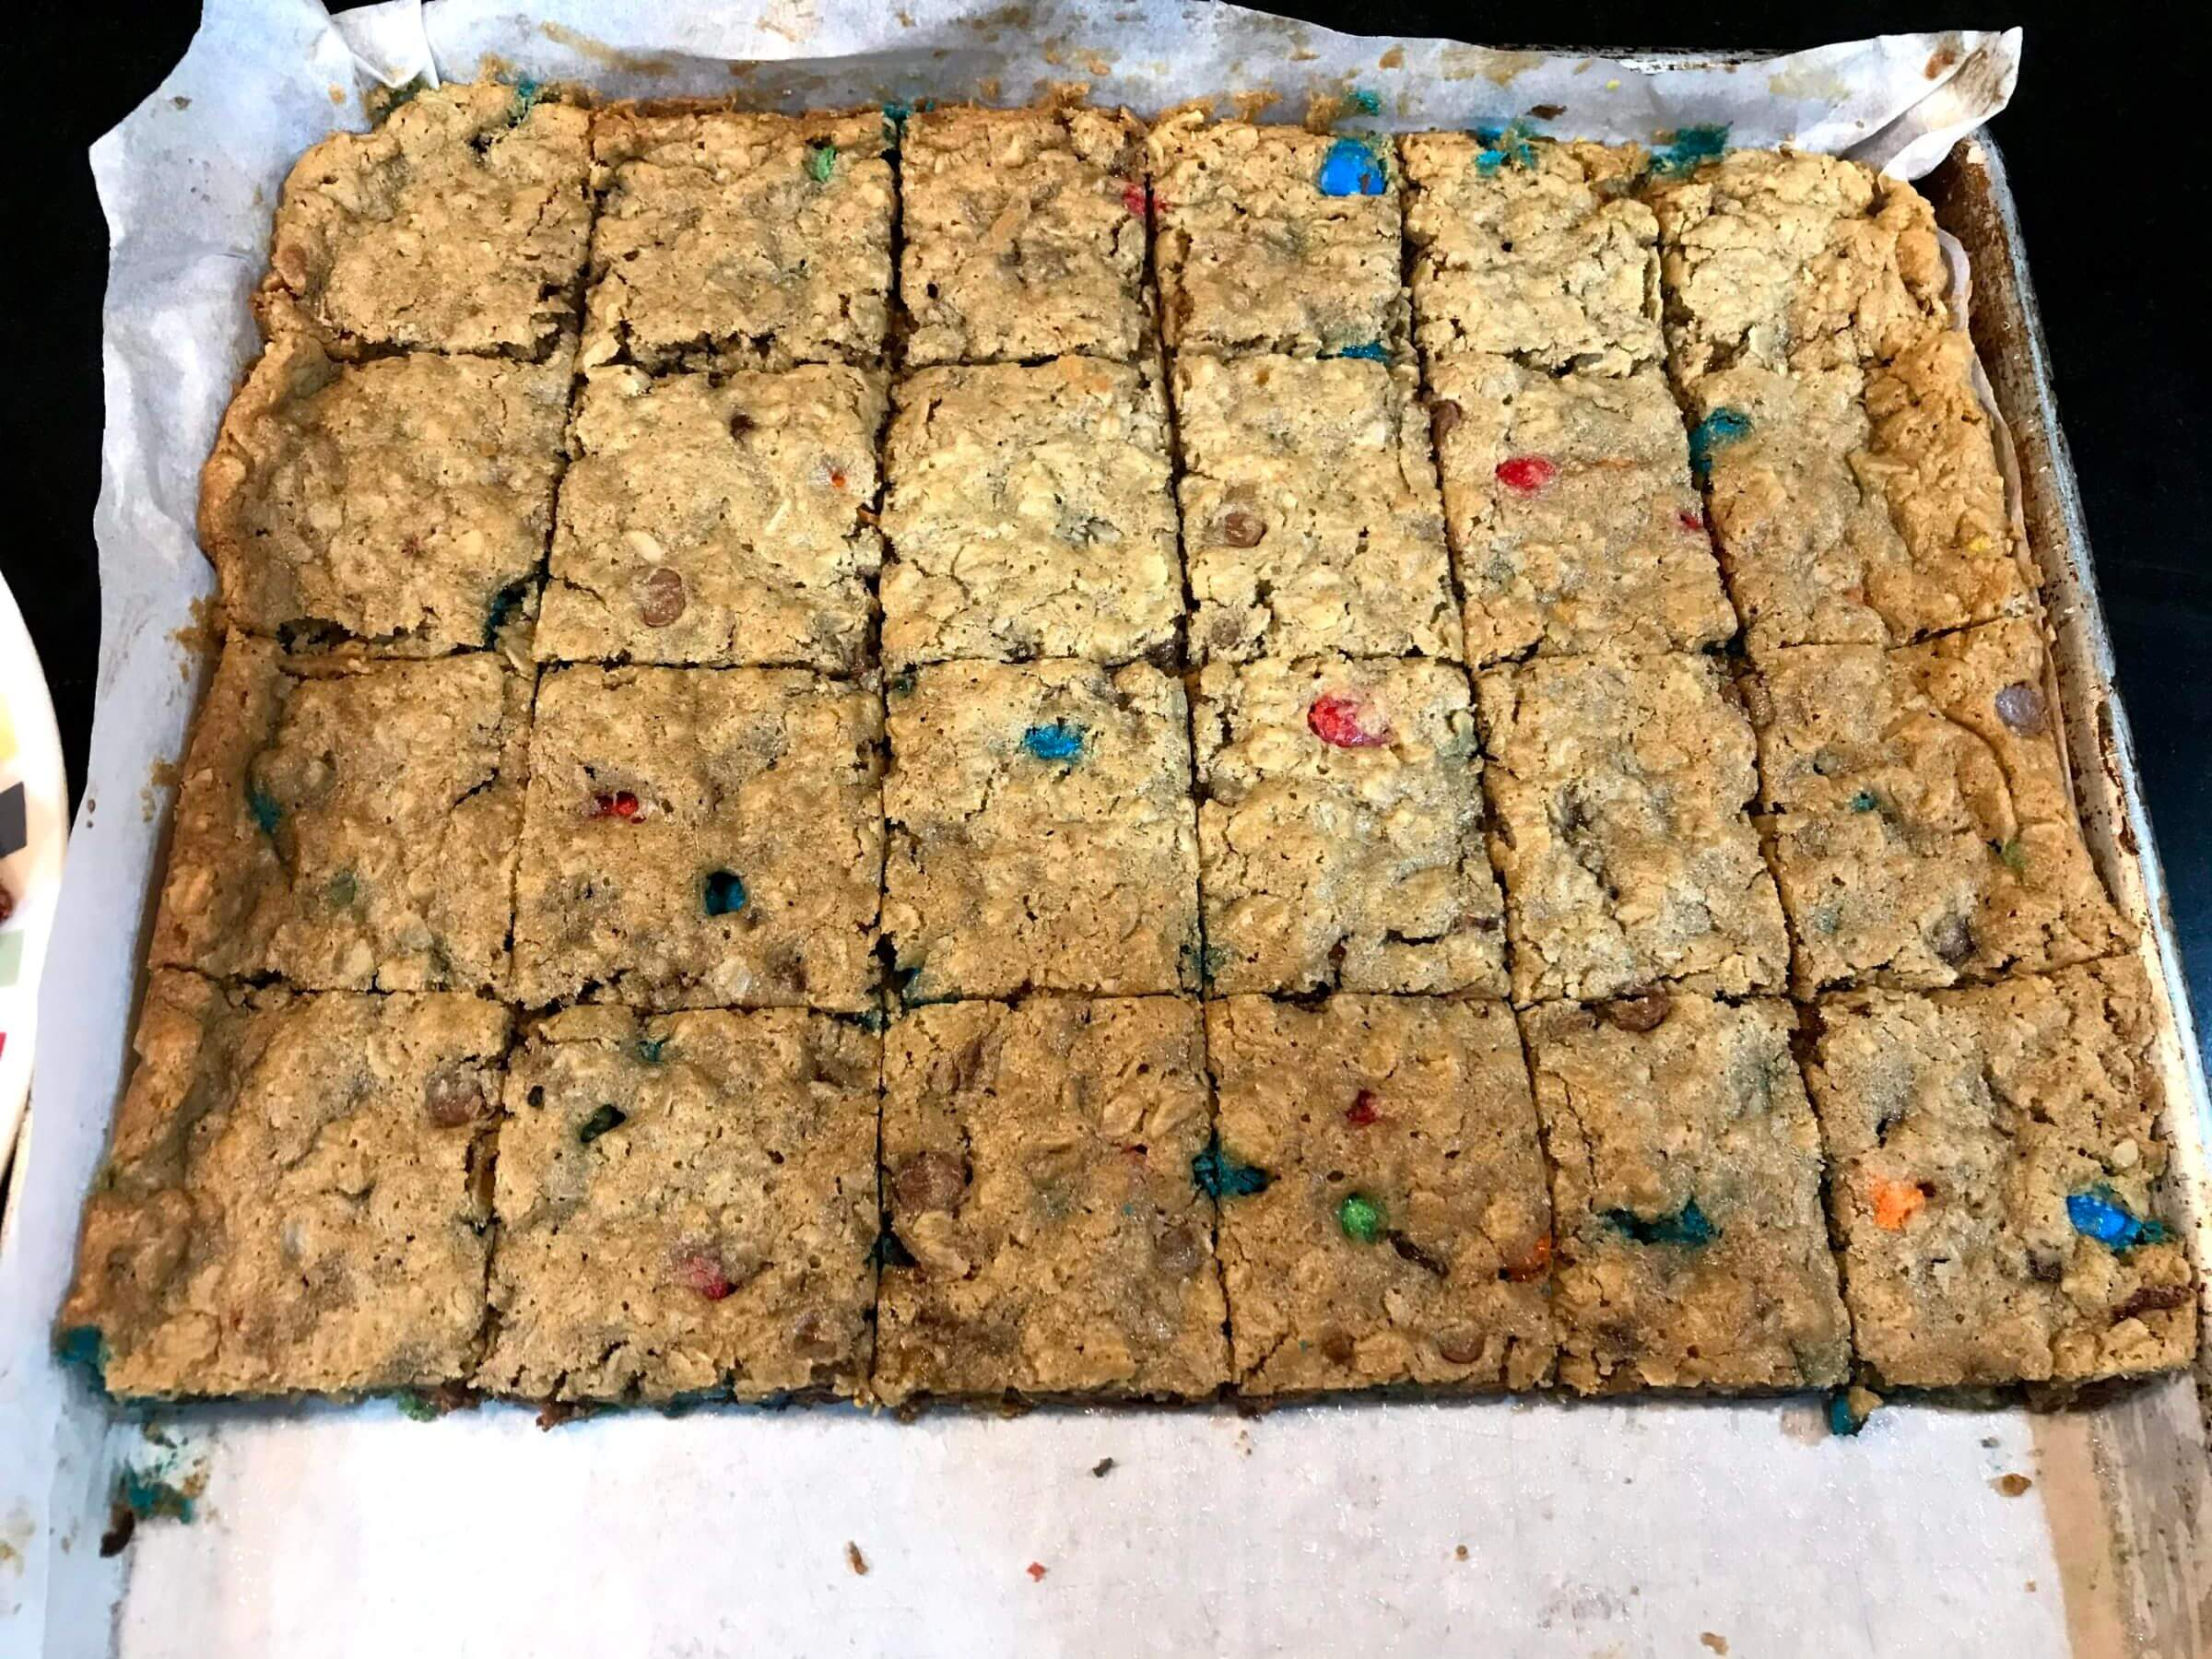 Gluten free monster cookie bars on parchment paper